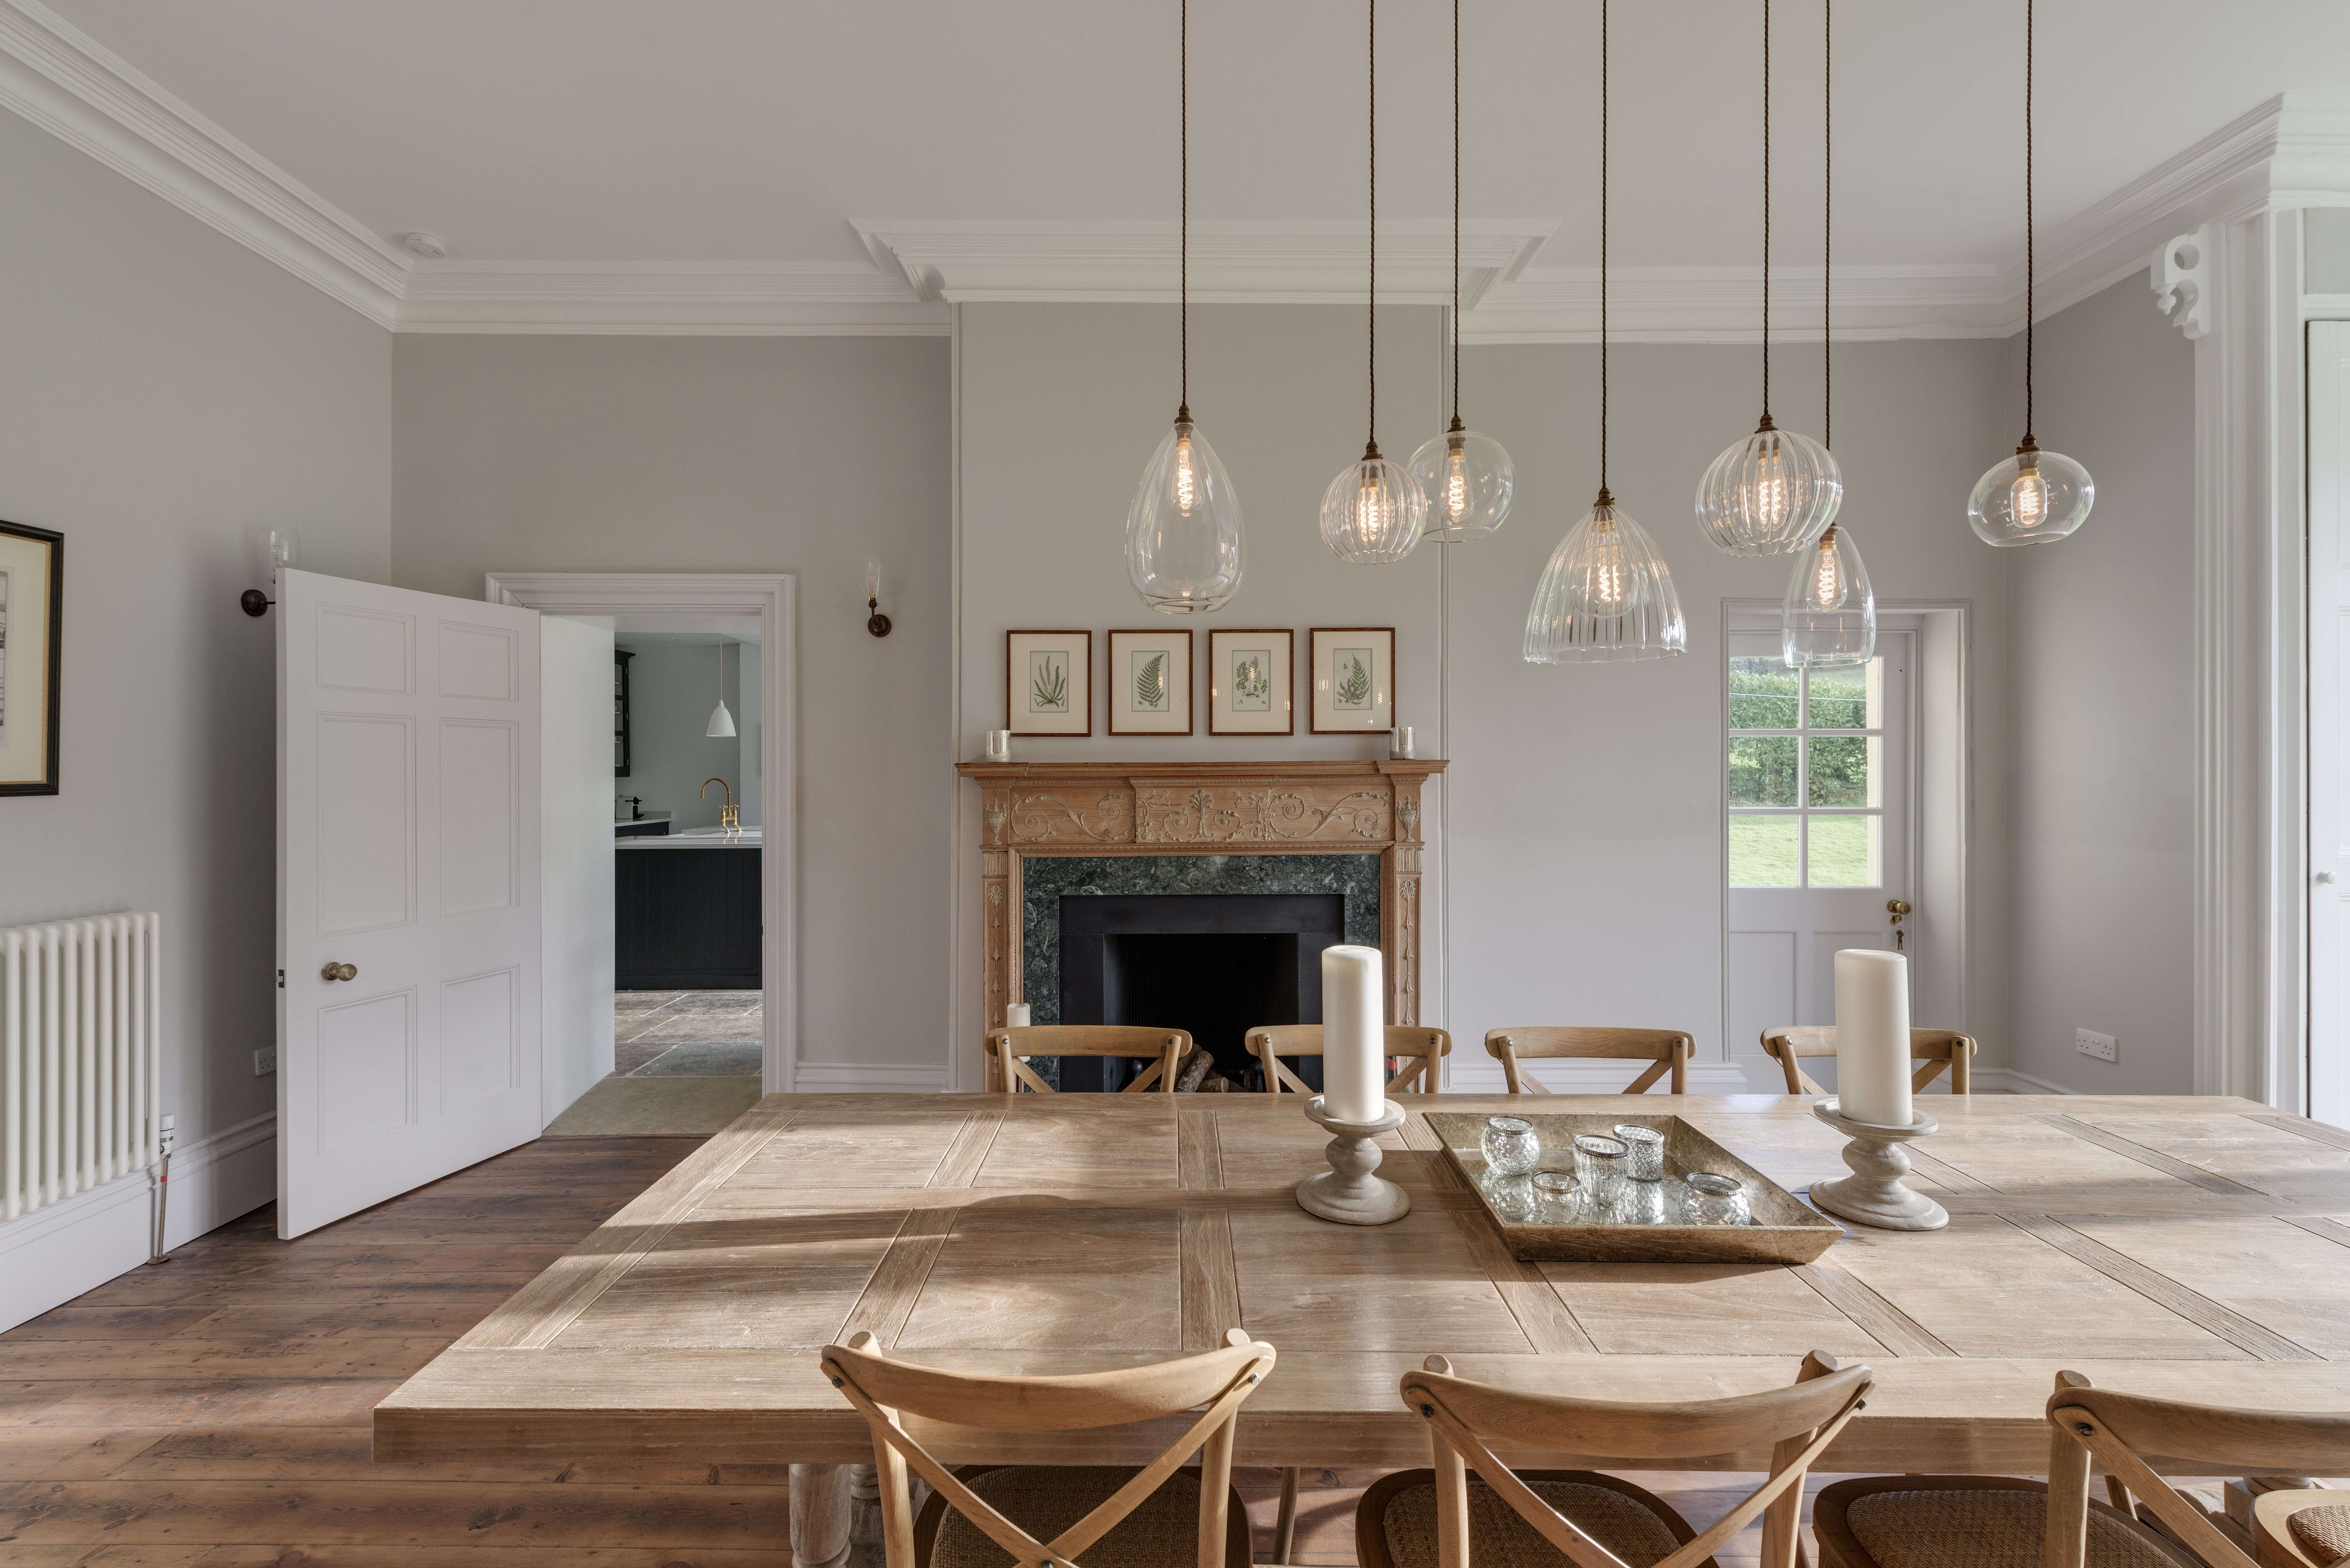 bespoke-lighting-design-for-above-dining-table